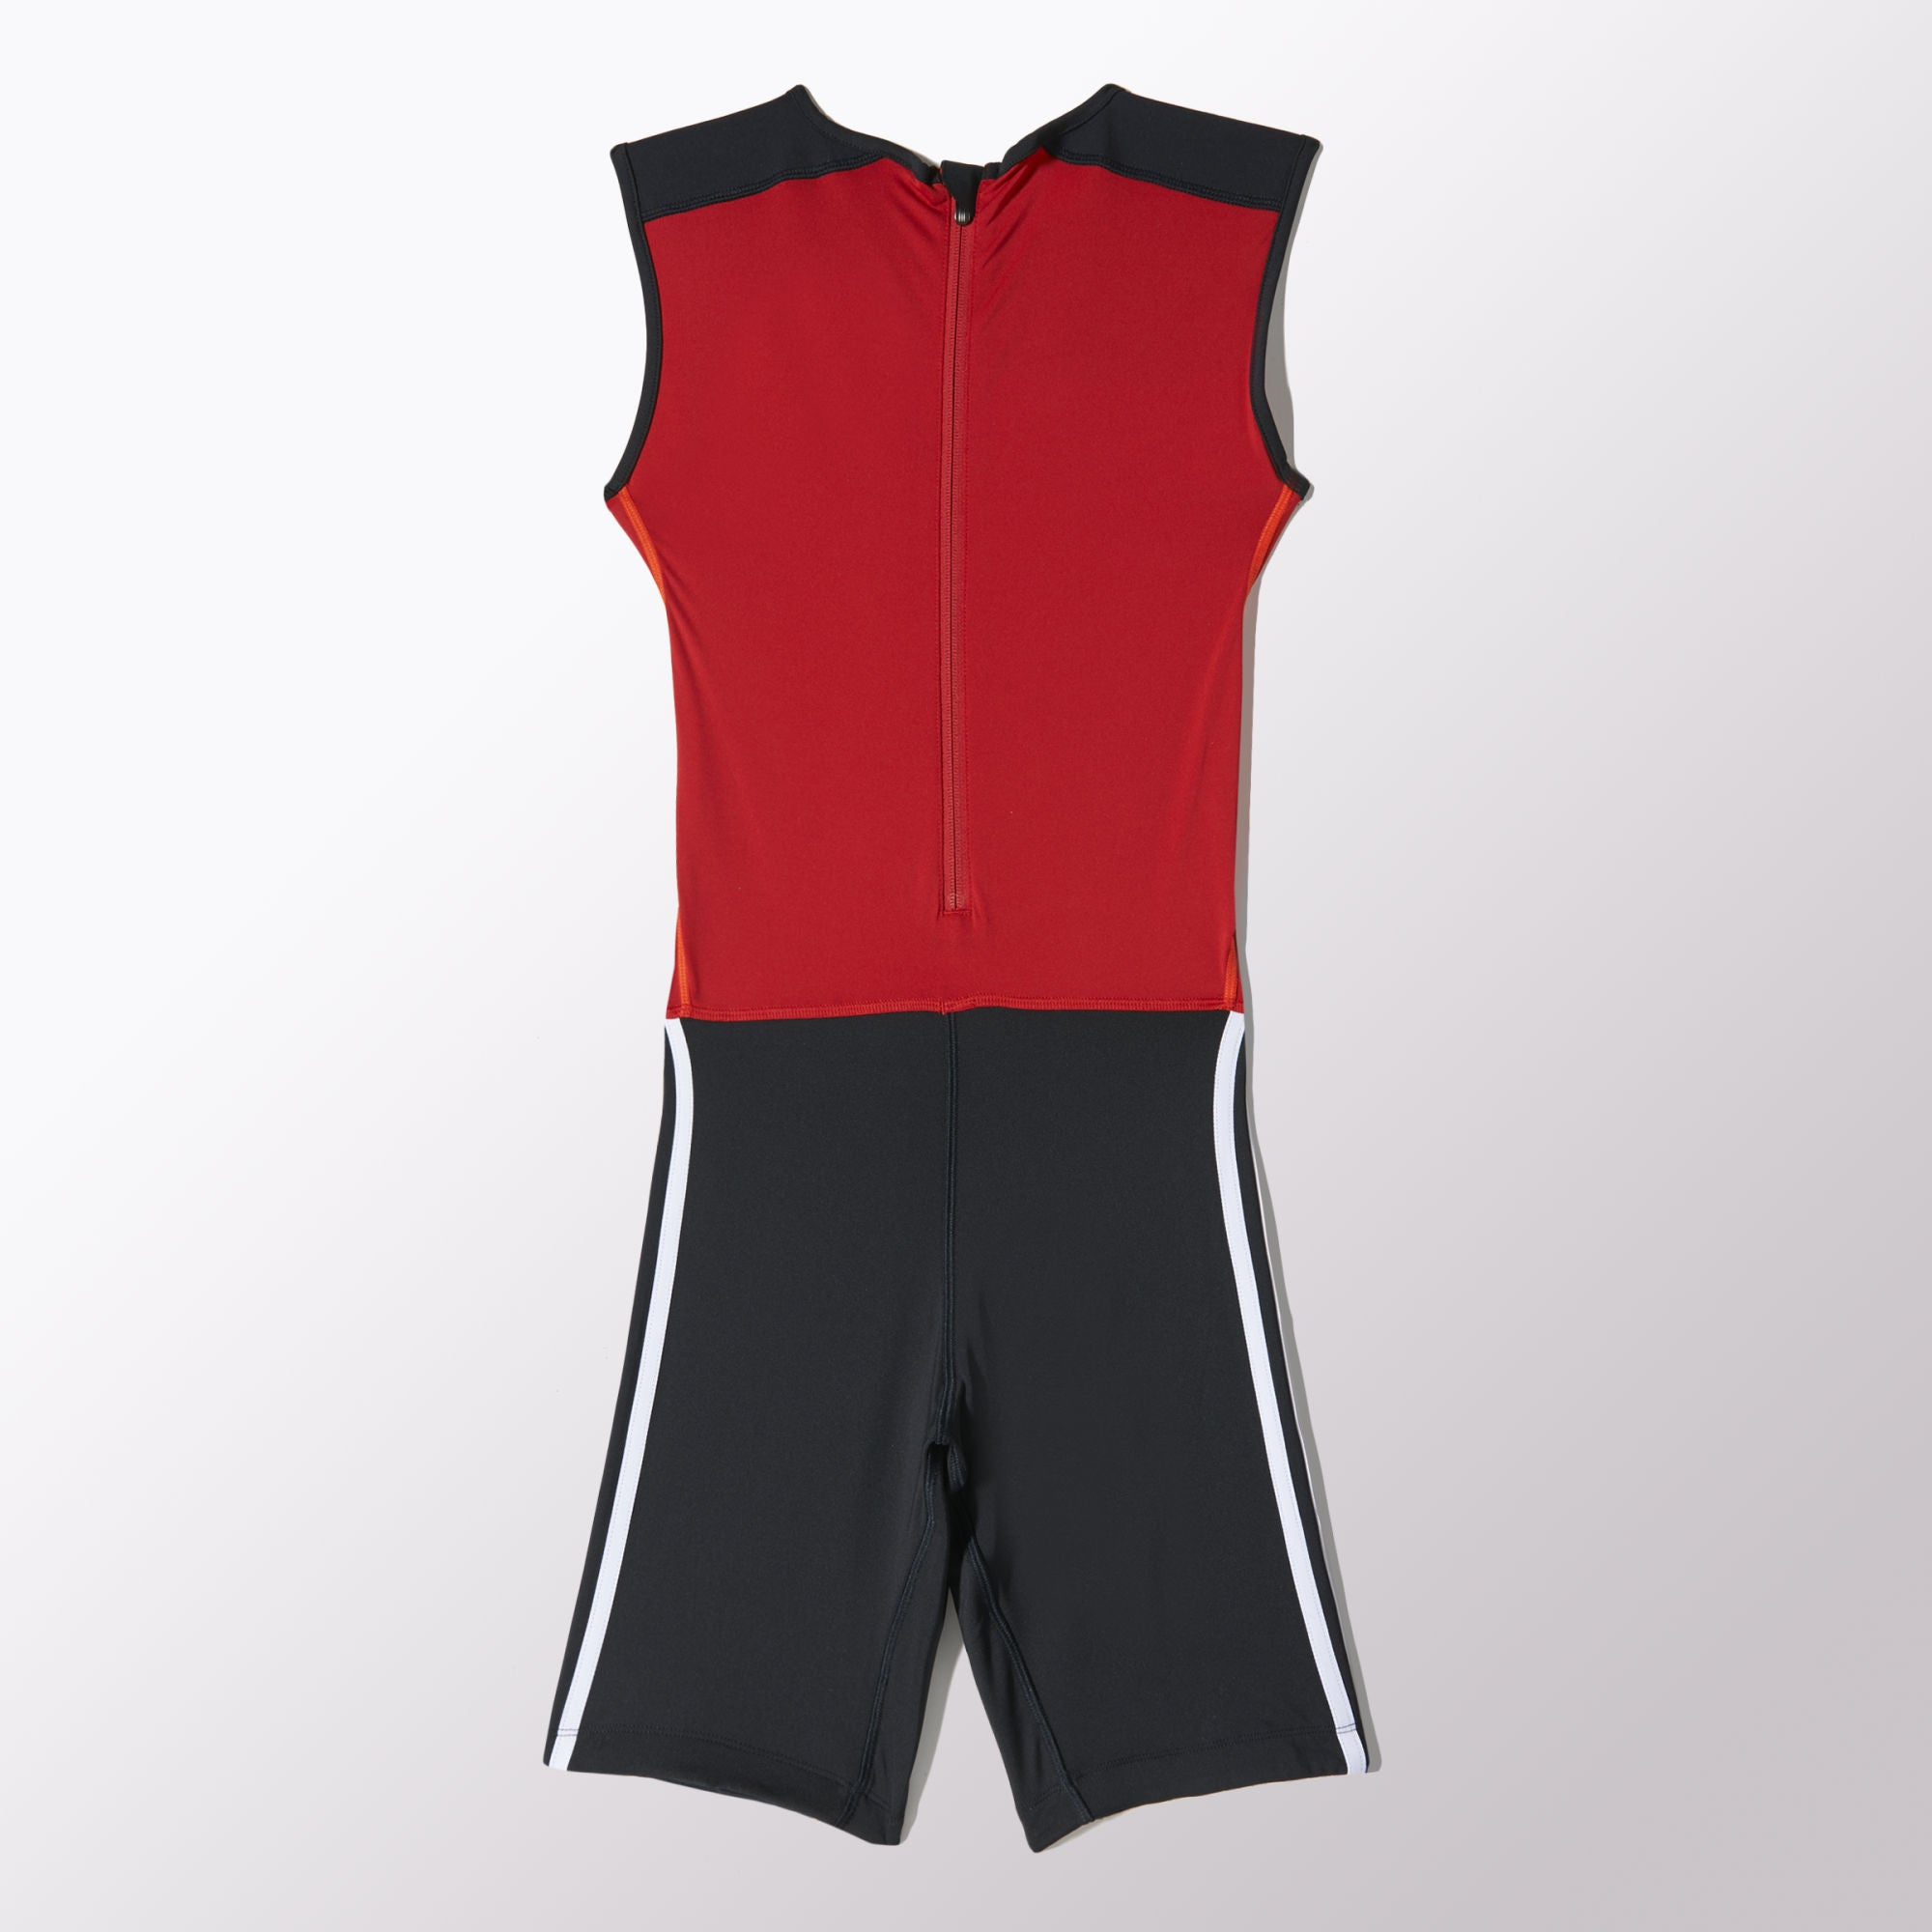 Adidas Weightlifter CLIMALITE Suit - Women